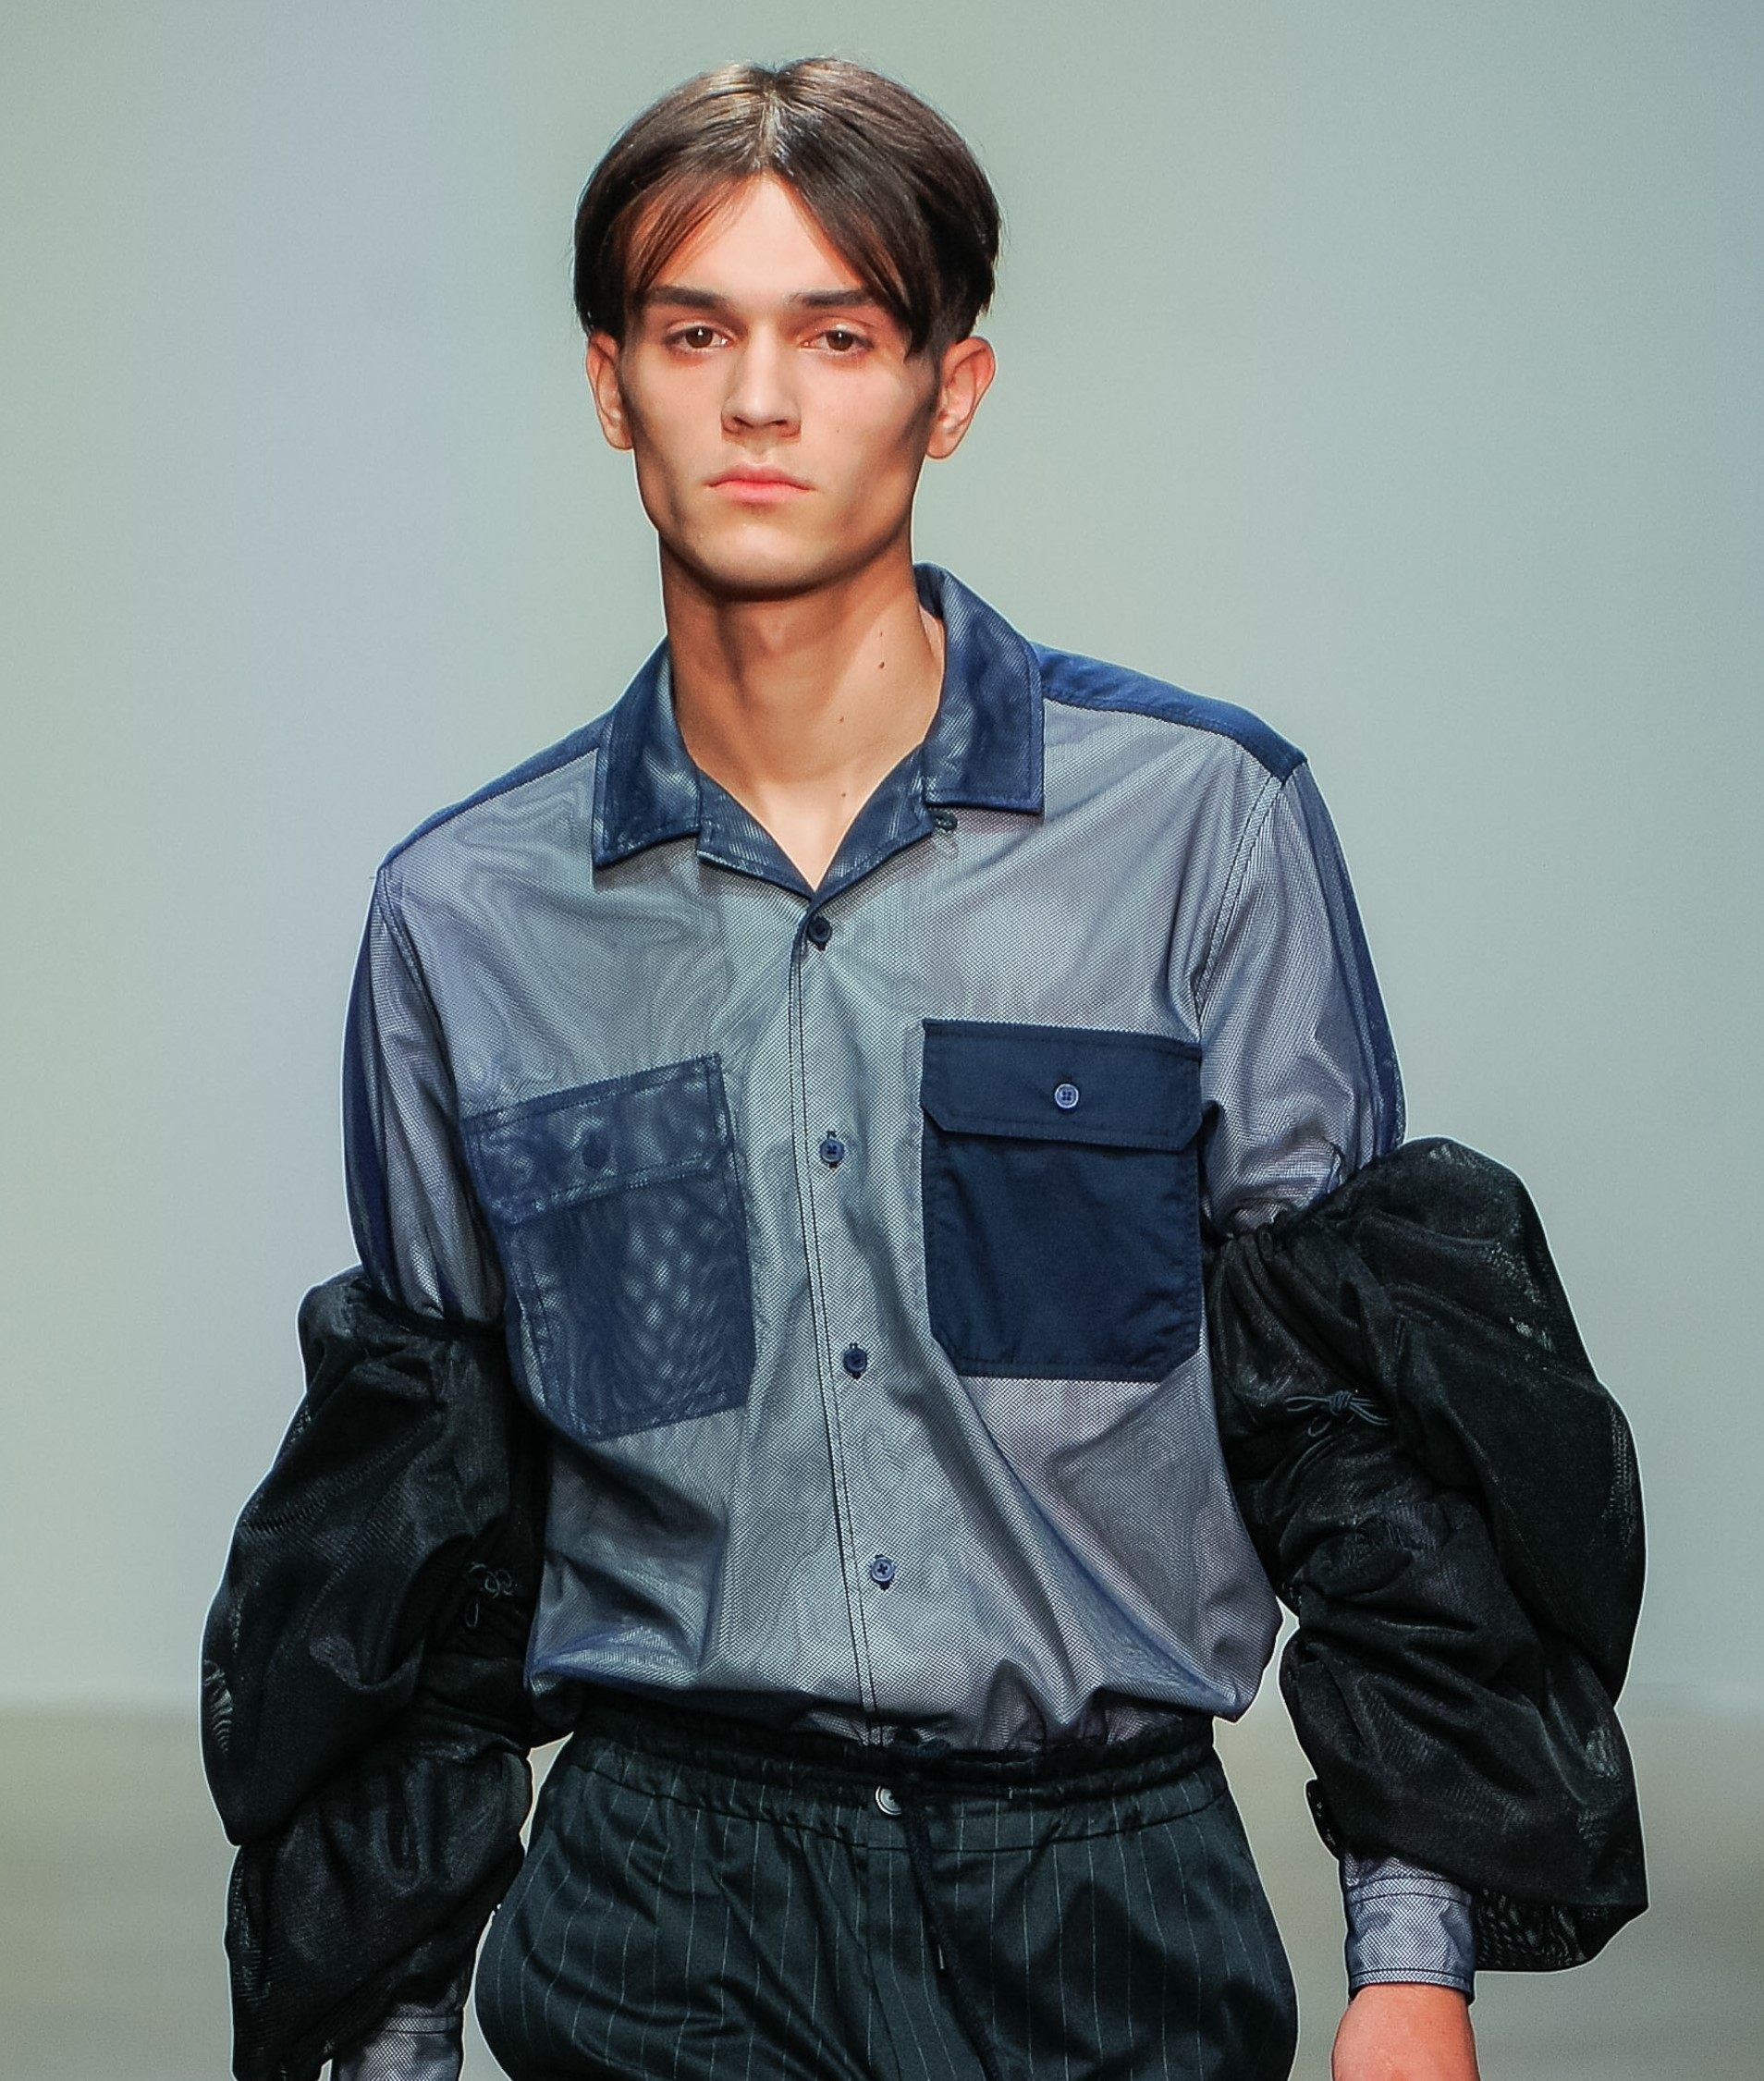 feng chen wang male model at the nyfw mens show with brunette 90s boyband curtain hair